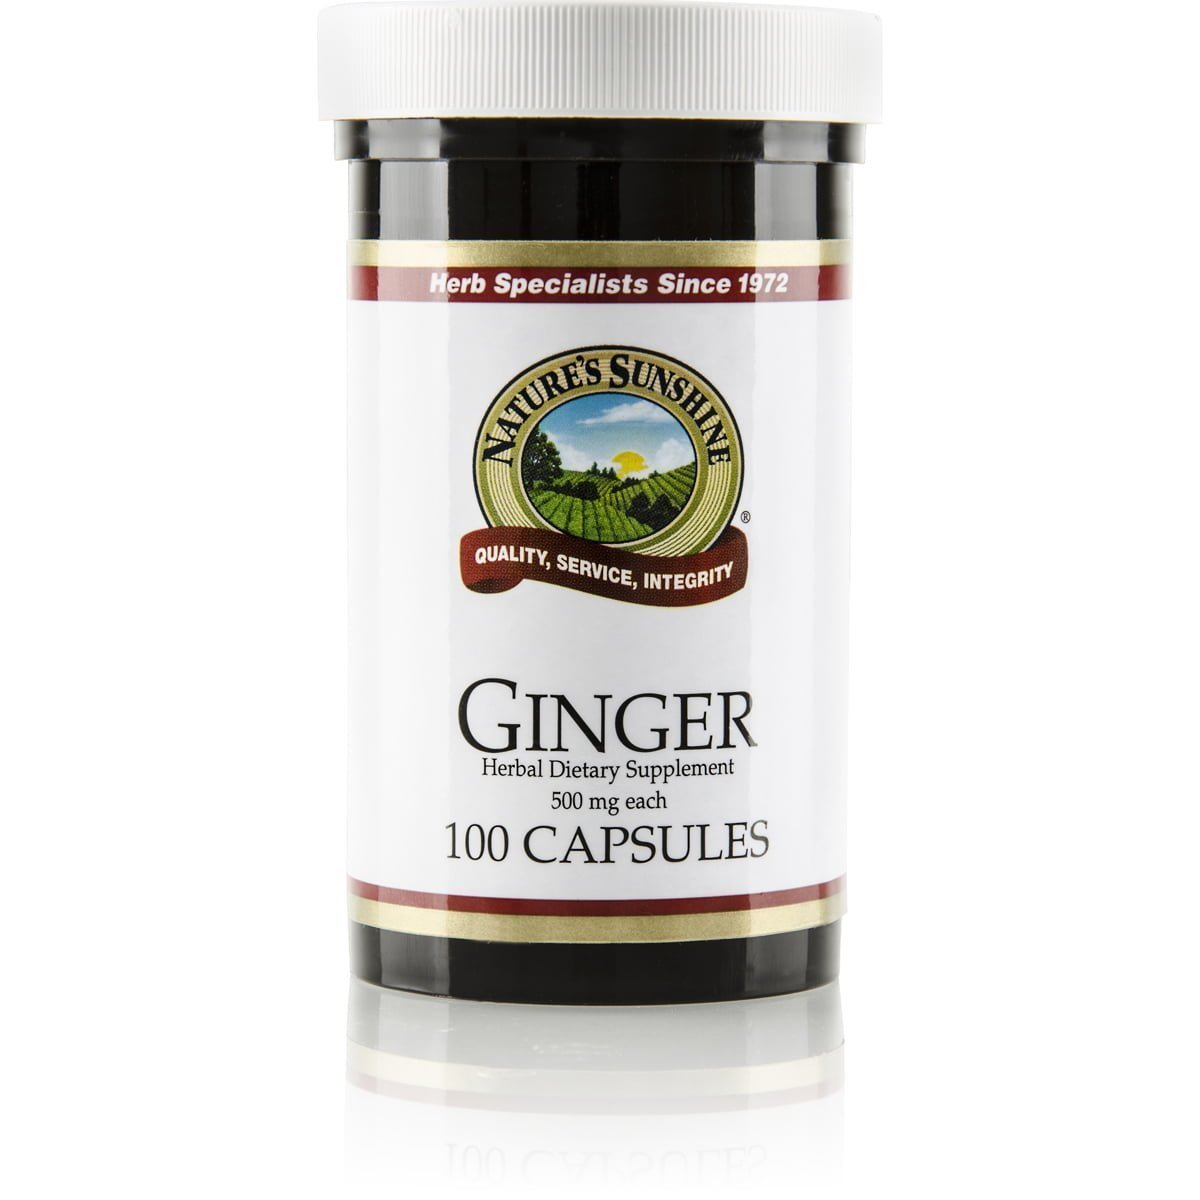 Ginger: Calms and relieves upset stomach